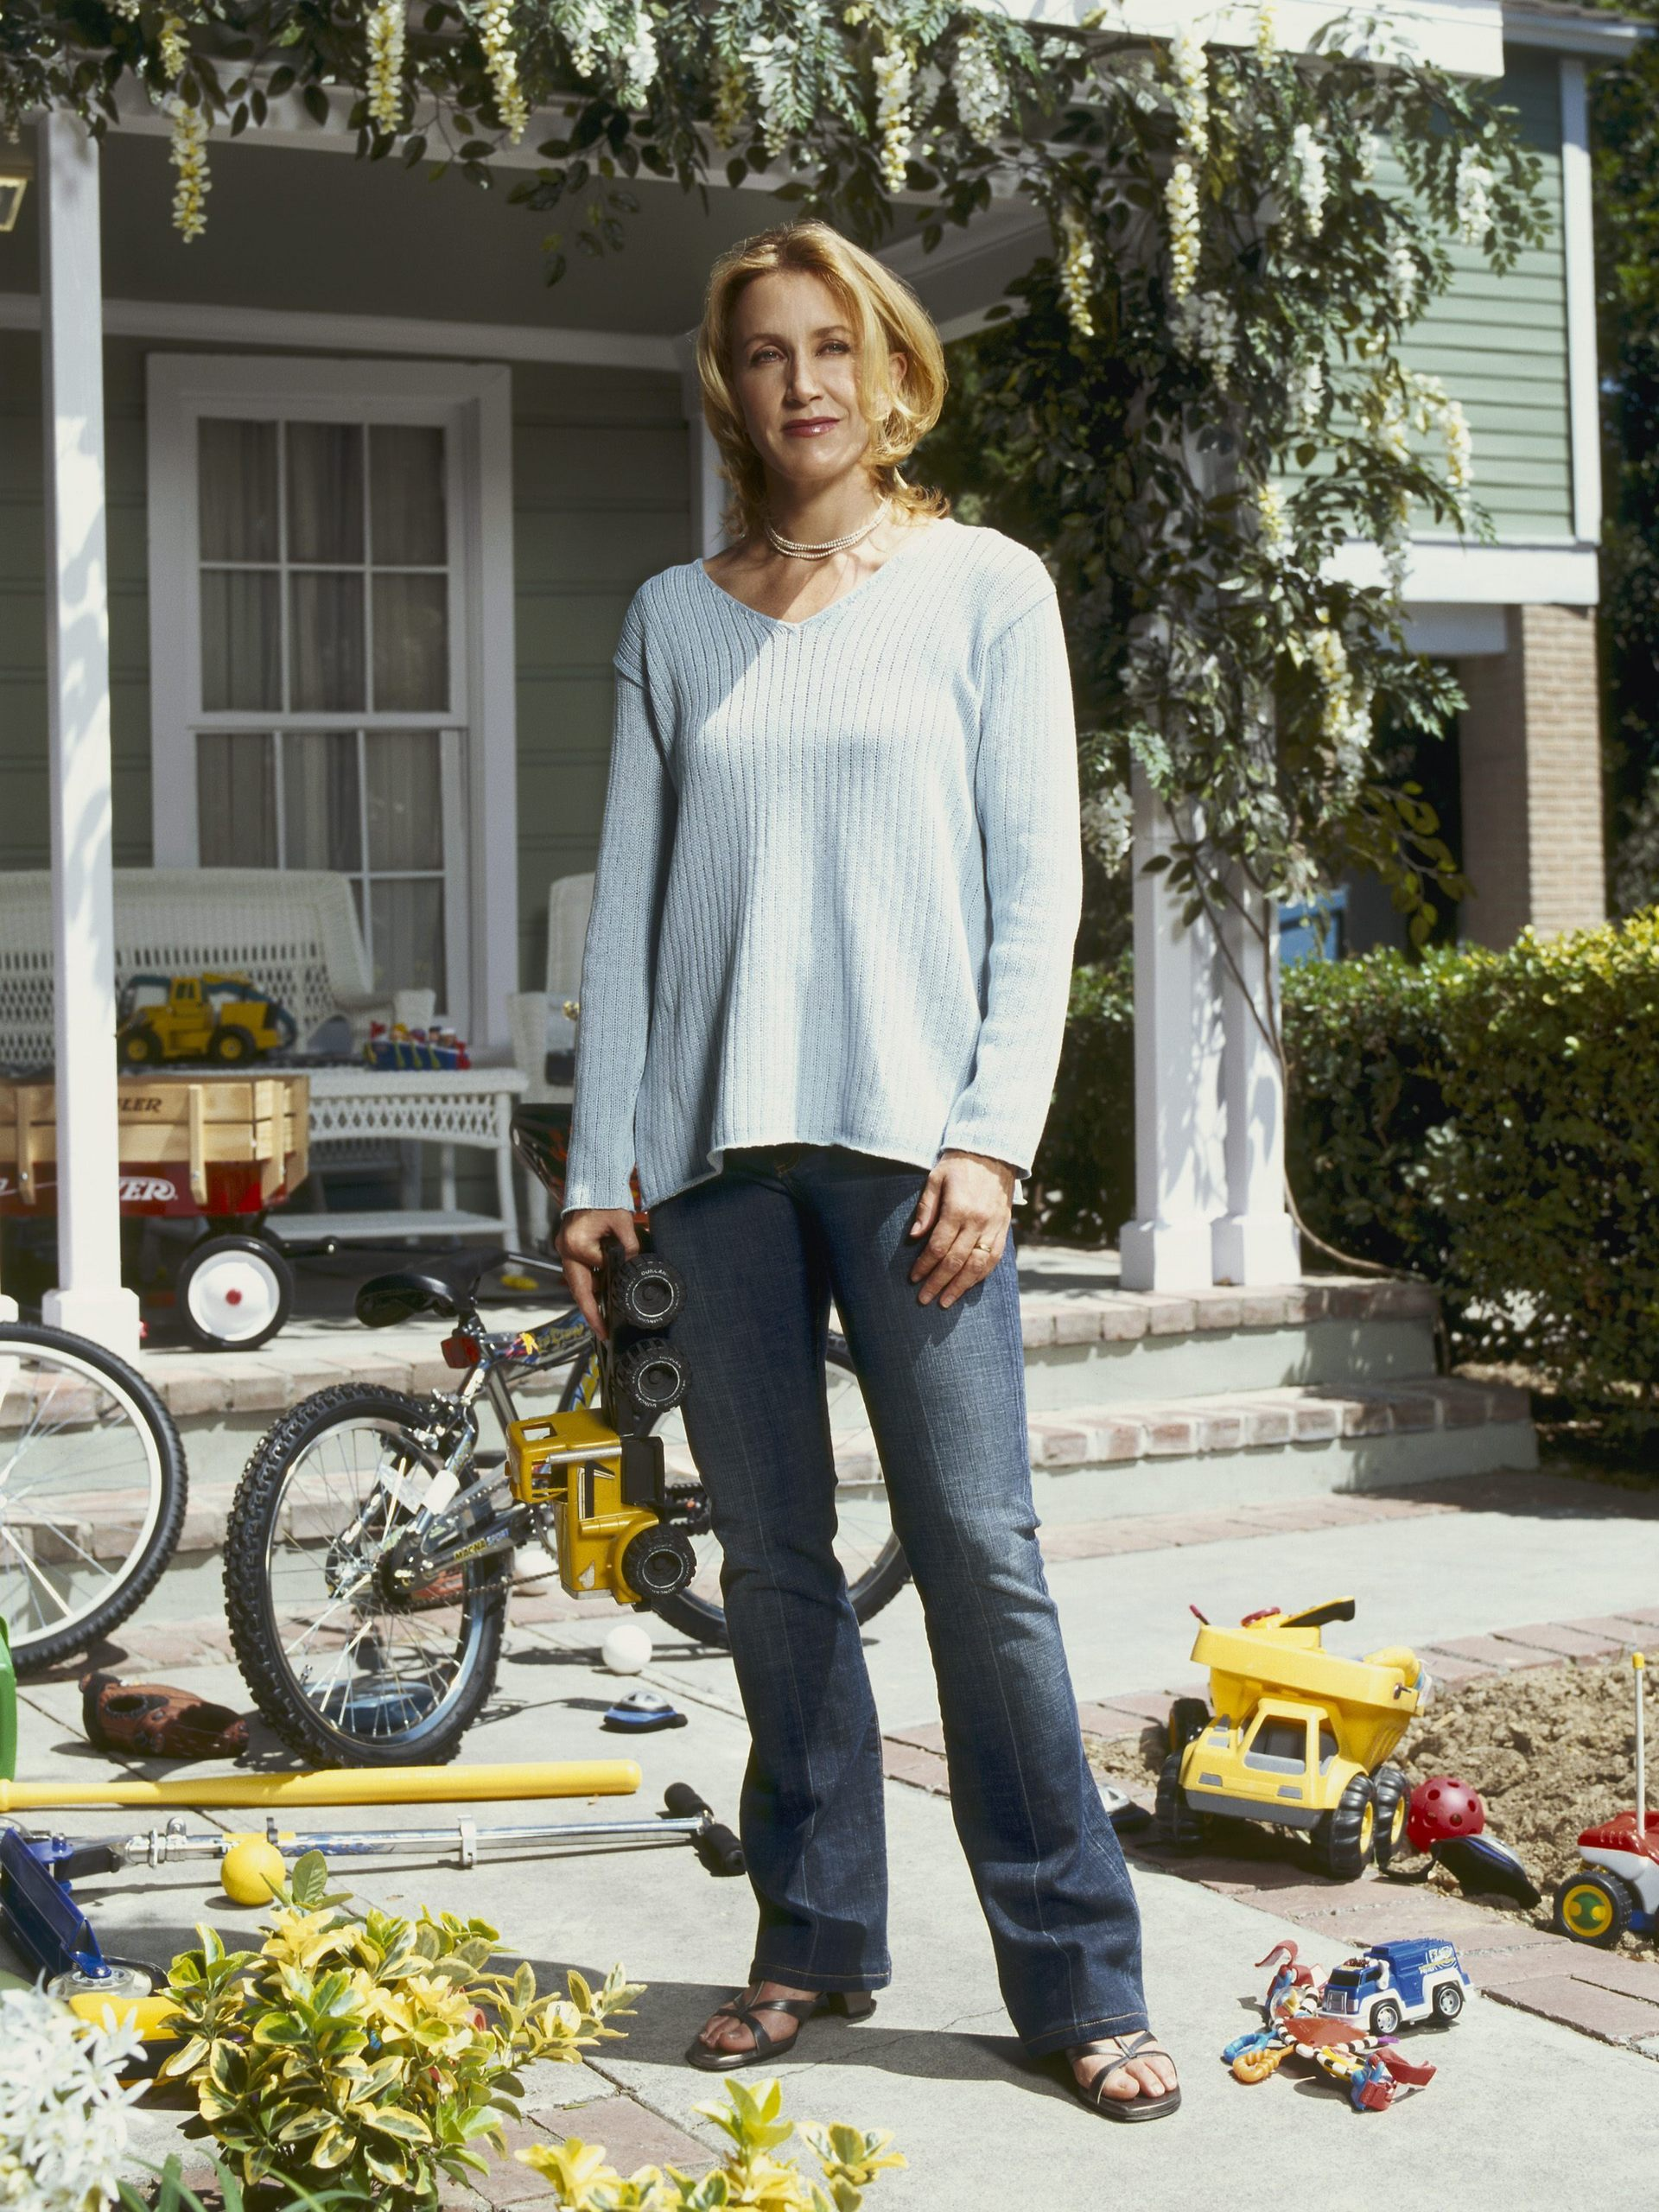 http://images2.fanpop.com/images/photos/6000000/Desperate-Housewives-desperate-housewives-6026844-1920-2560.jpg